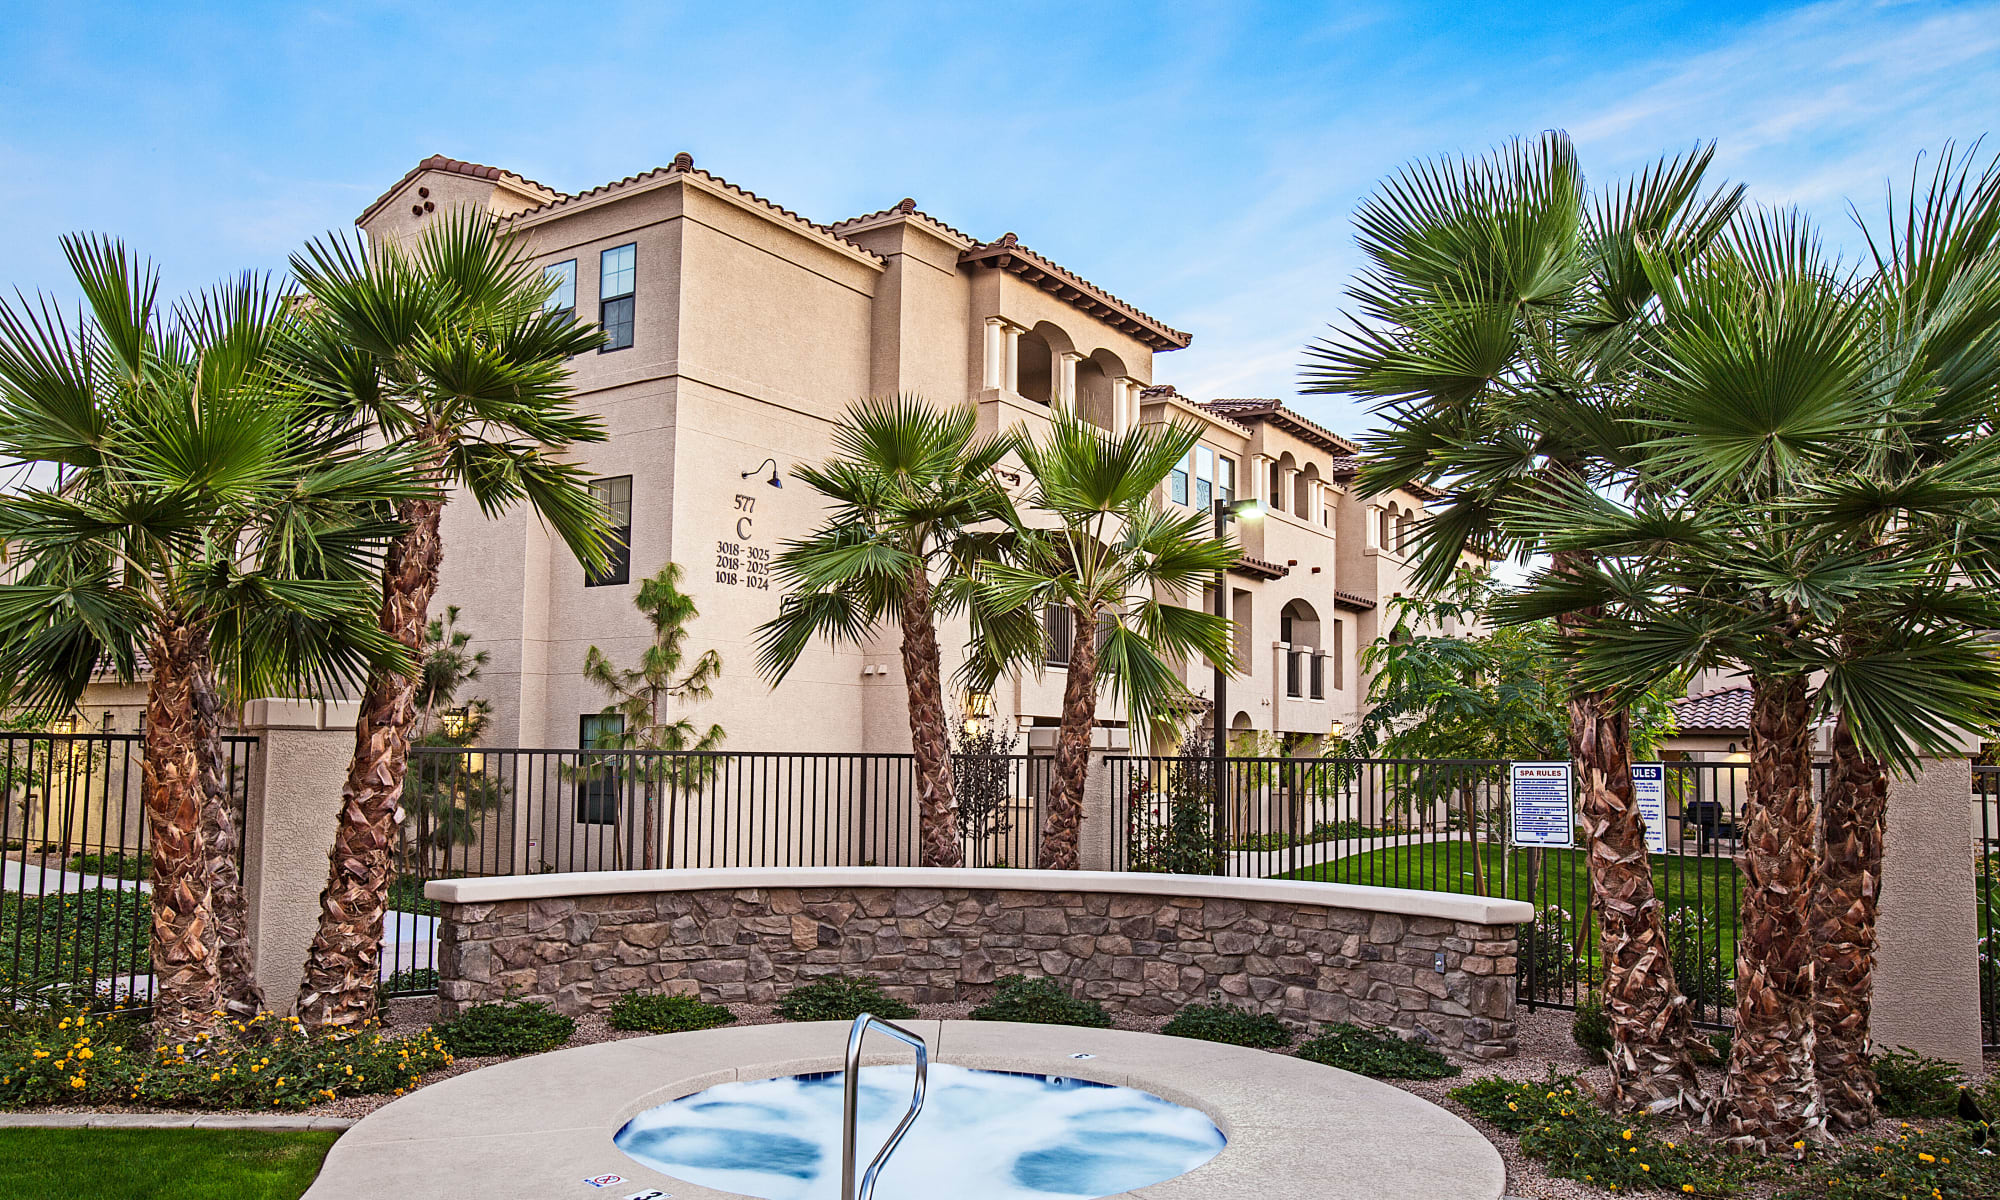 San Marquis floor plans with access to views of pristine landscaping in Tempe, Arizona